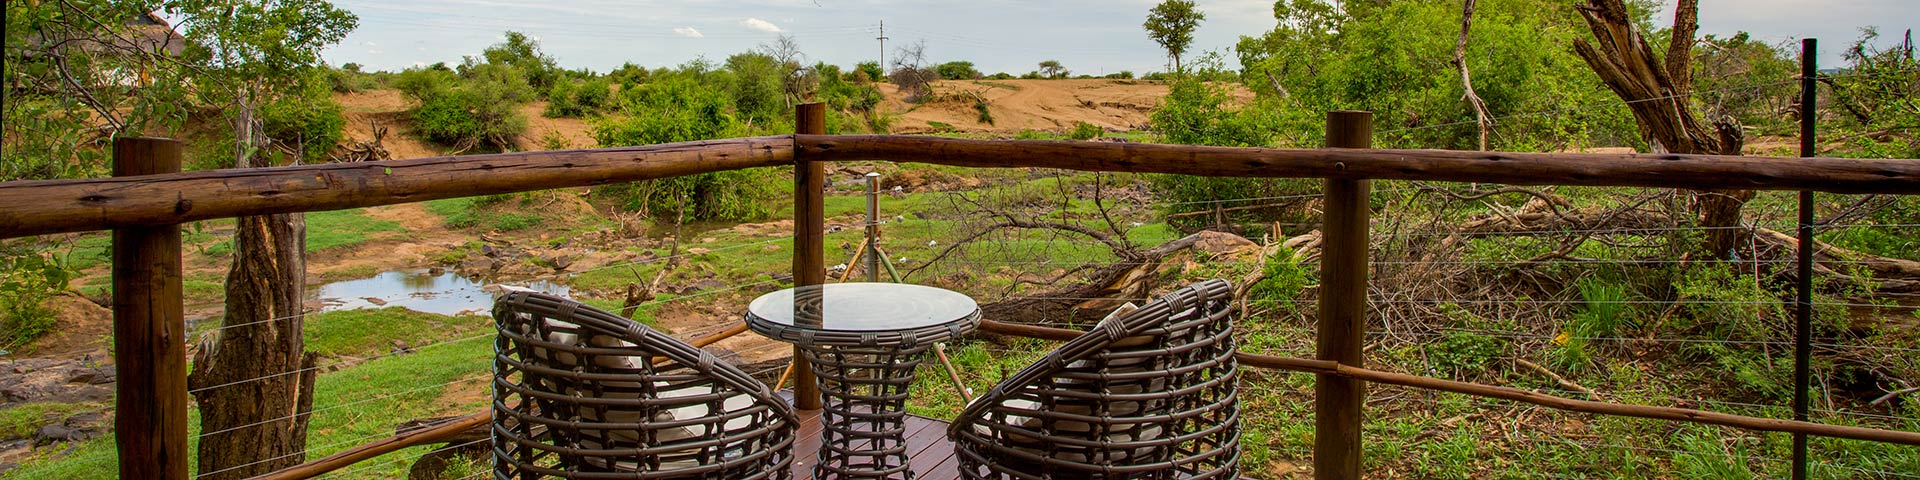 Madikwe-River-Lodge-Slider-03